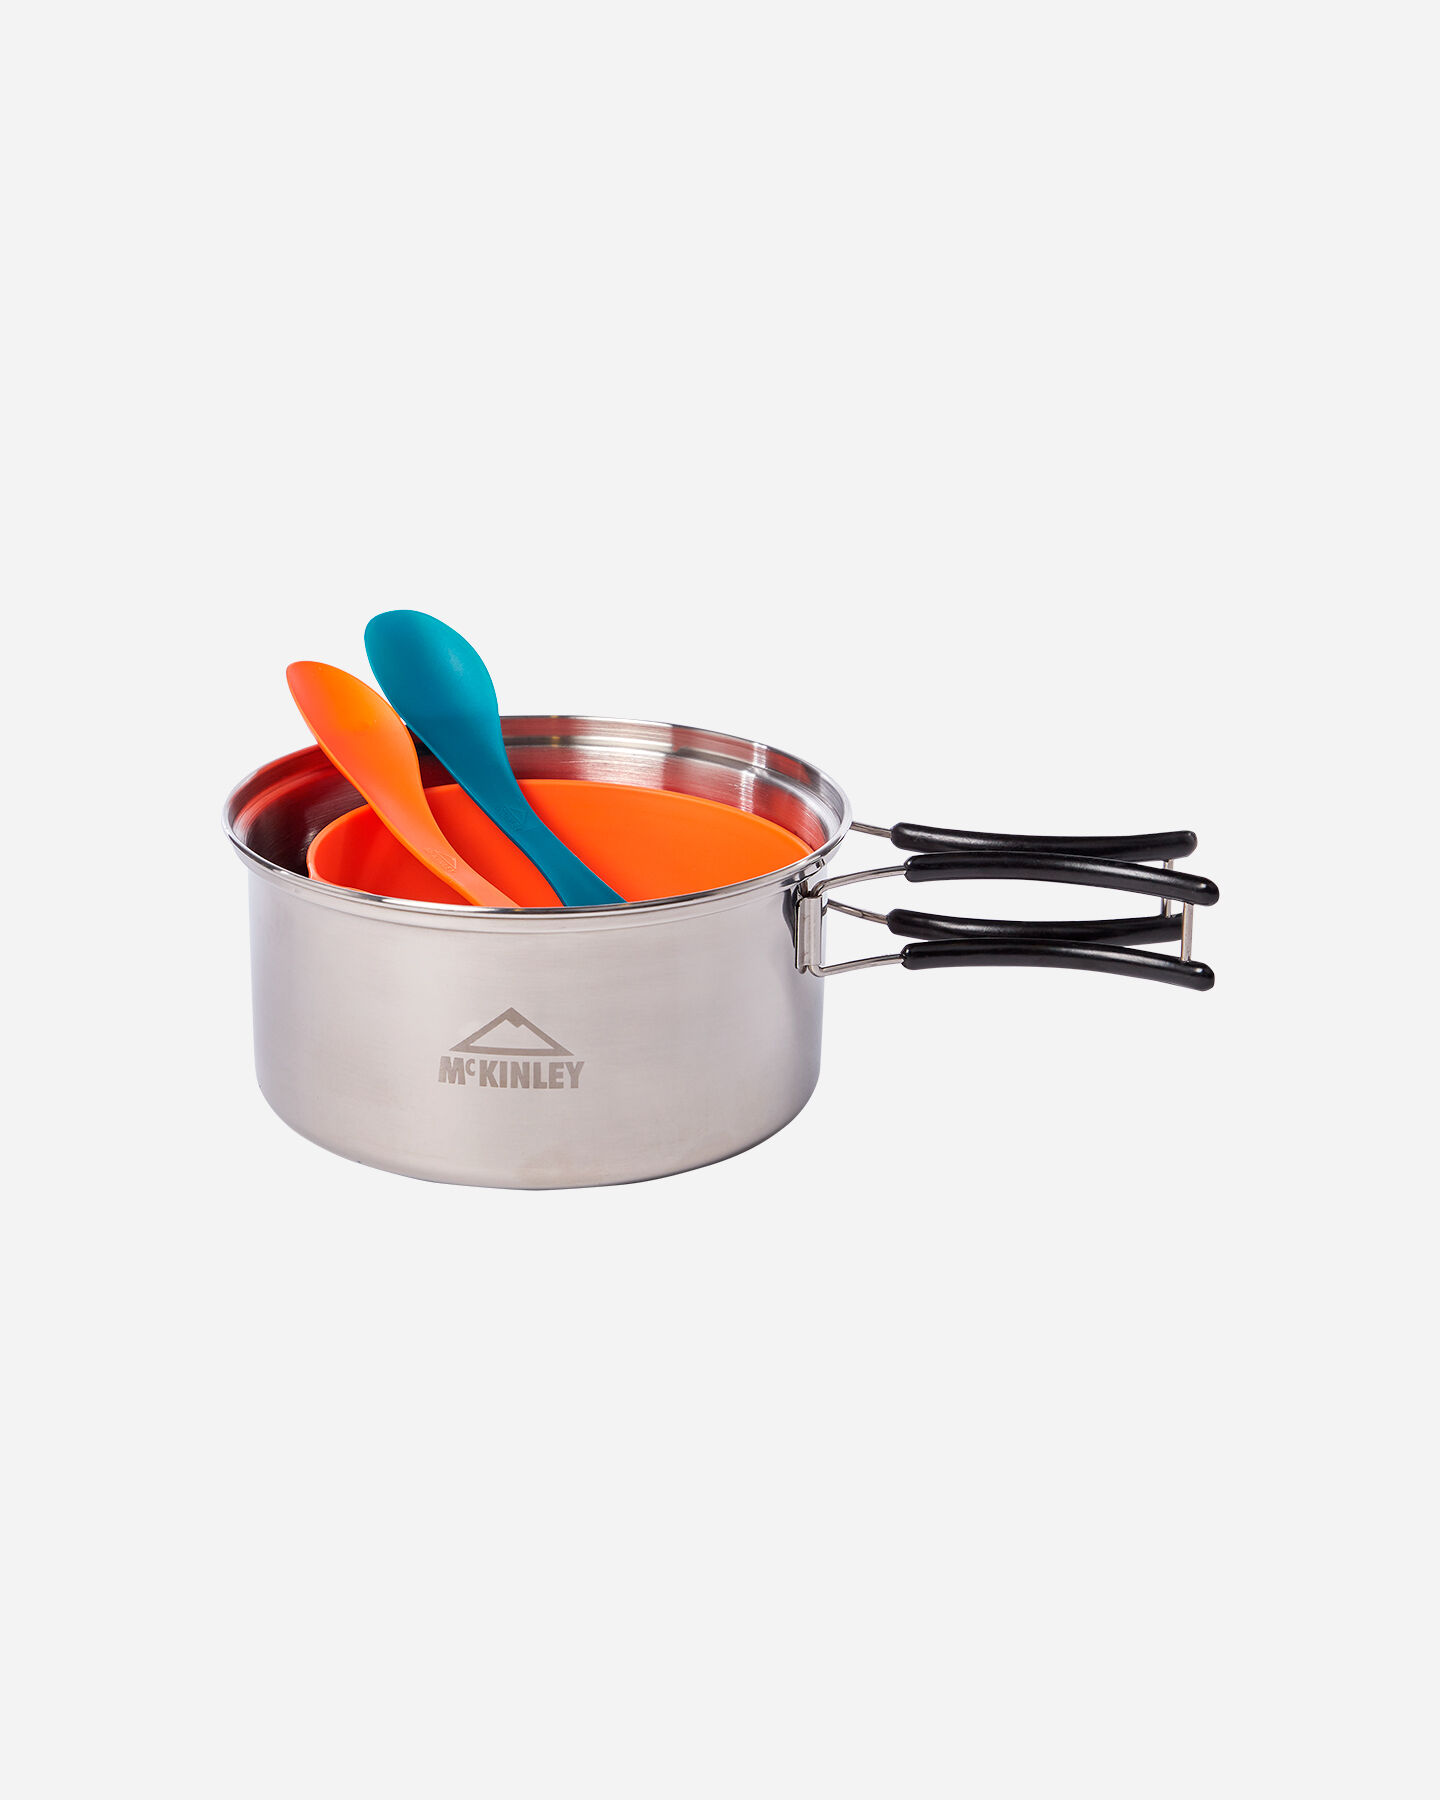 Accessorio camping MCKINLEY COOKING SET STAINLESS STEEL 2P S5190617 900 - scatto 1